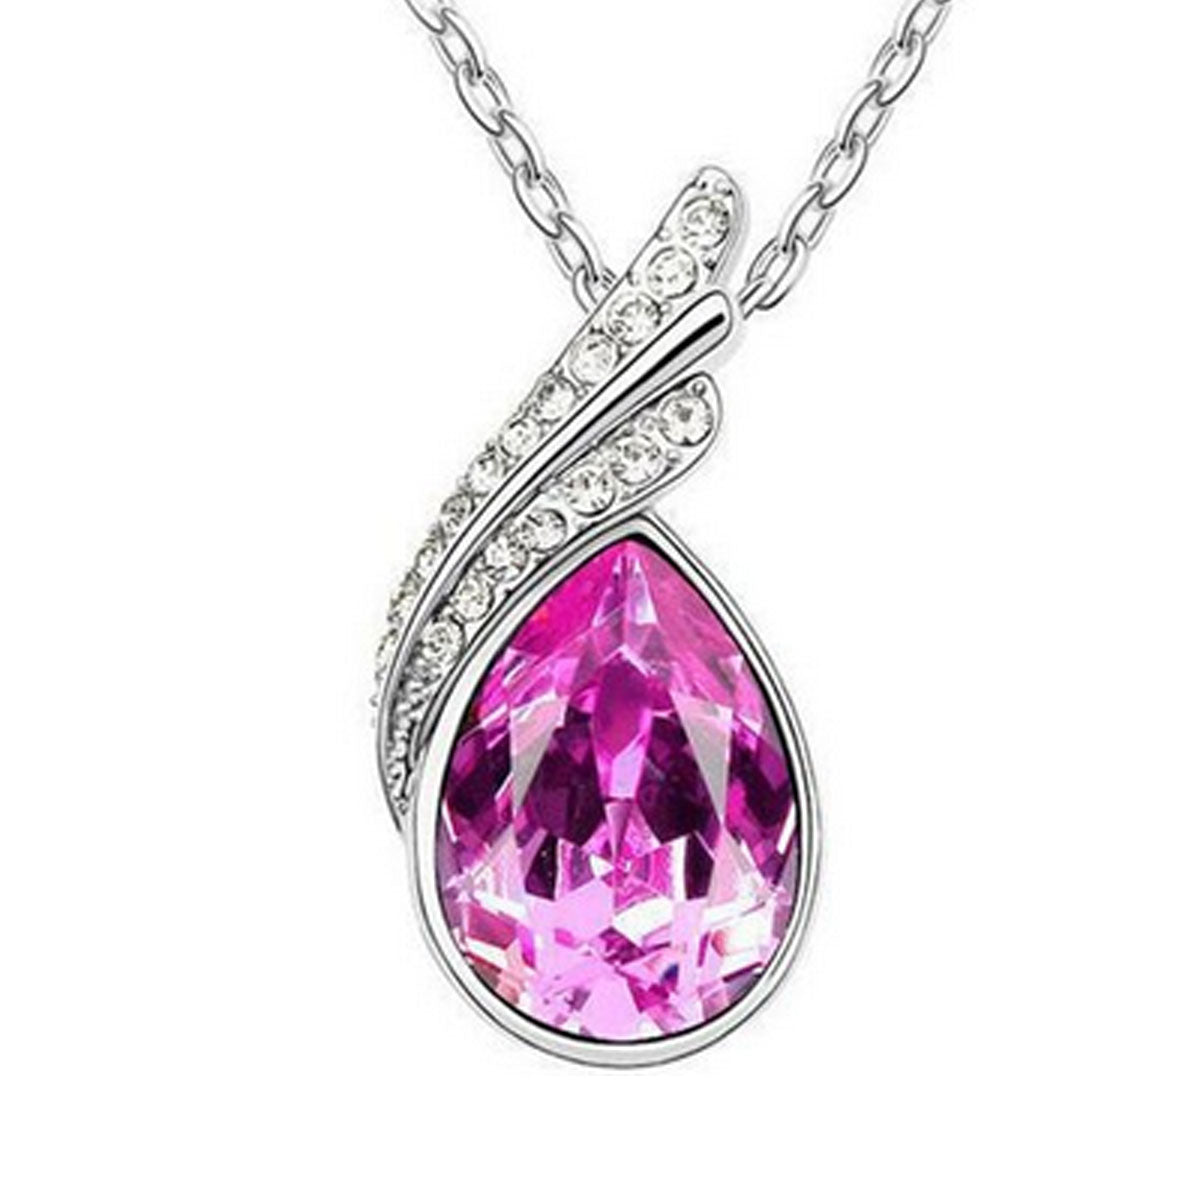 Wrapables Elegant Teardrop Swarovski Elements Crystal Pendant Necklace